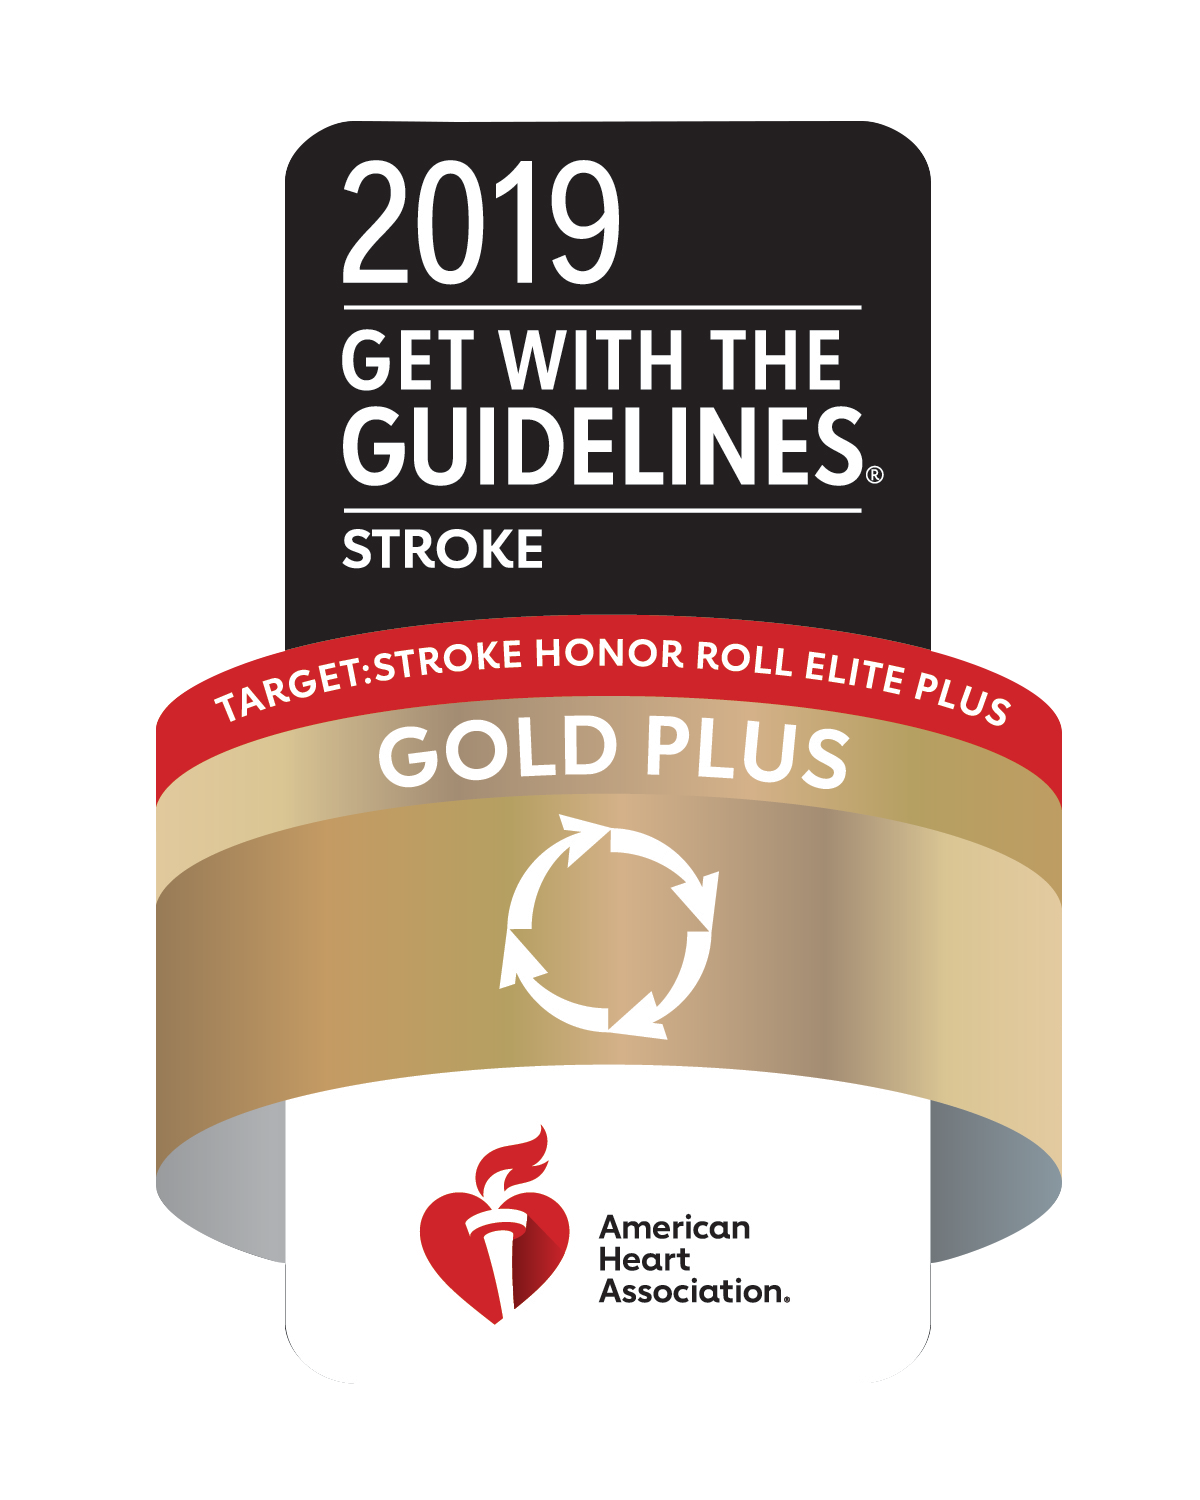 American Heart Association 2019 Get with the Guidelines Gold Plus Award